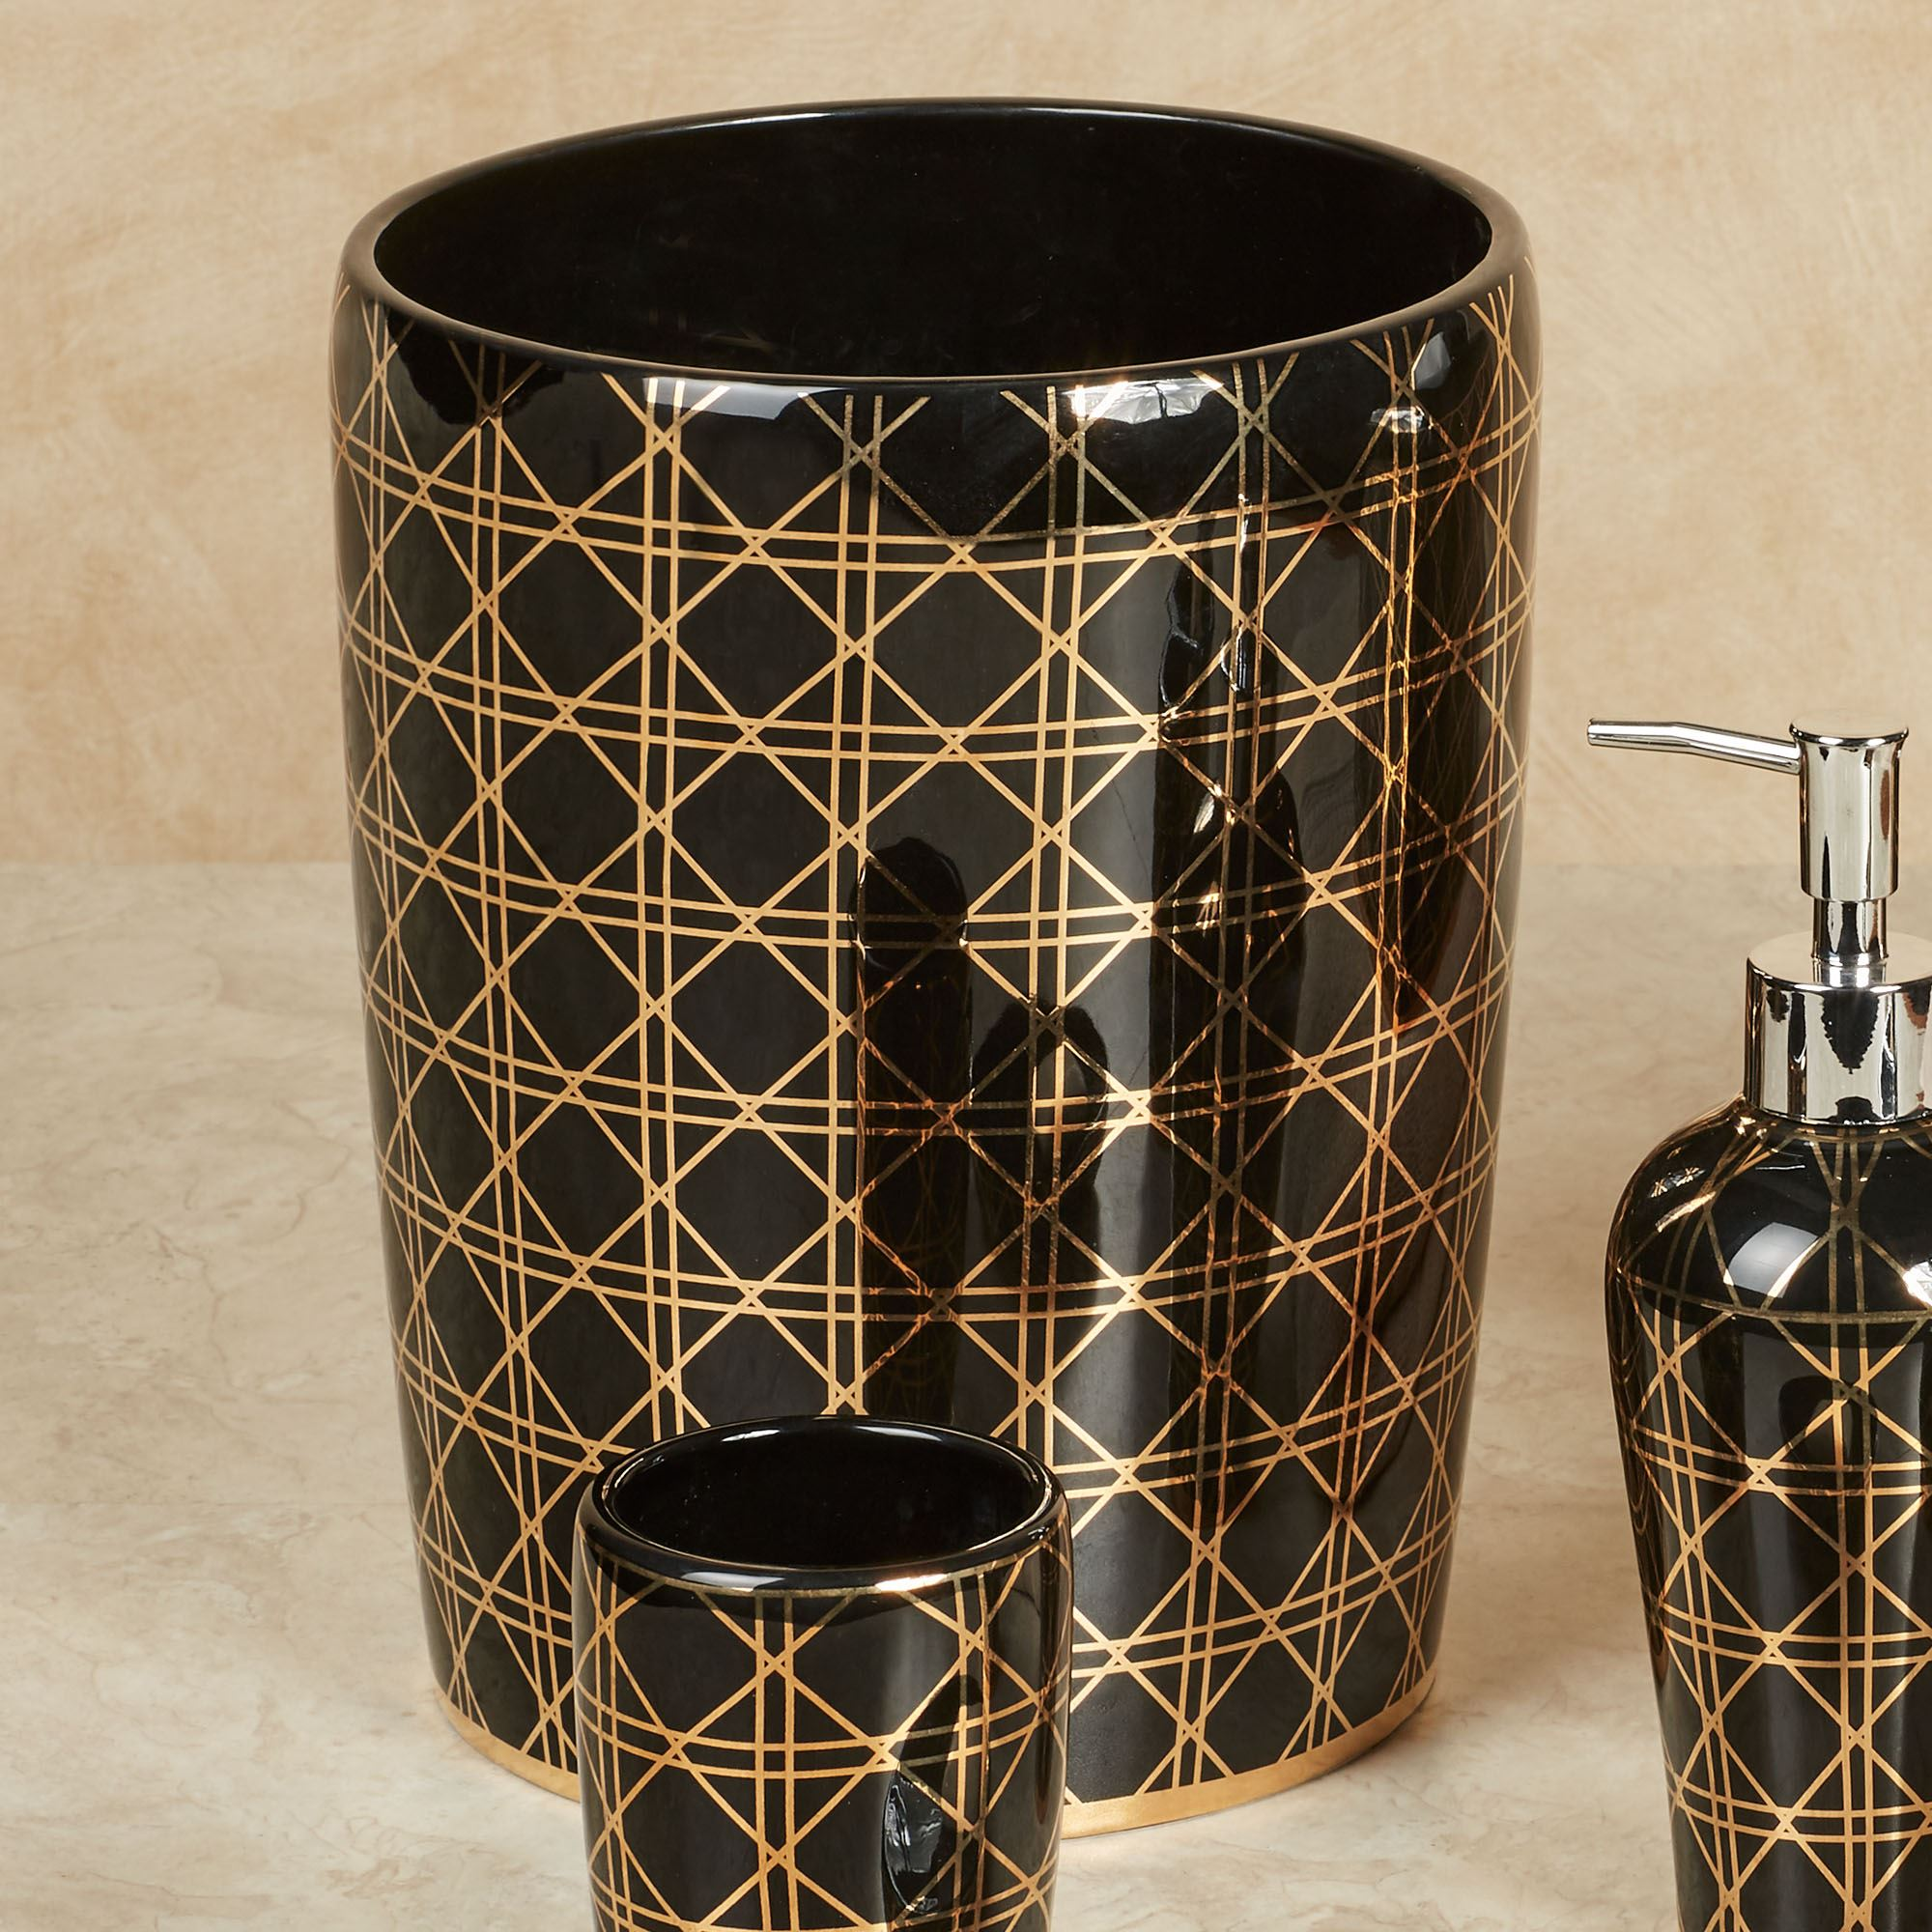 beauty black and gold geometric bath accessories. Black Bedroom Furniture Sets. Home Design Ideas